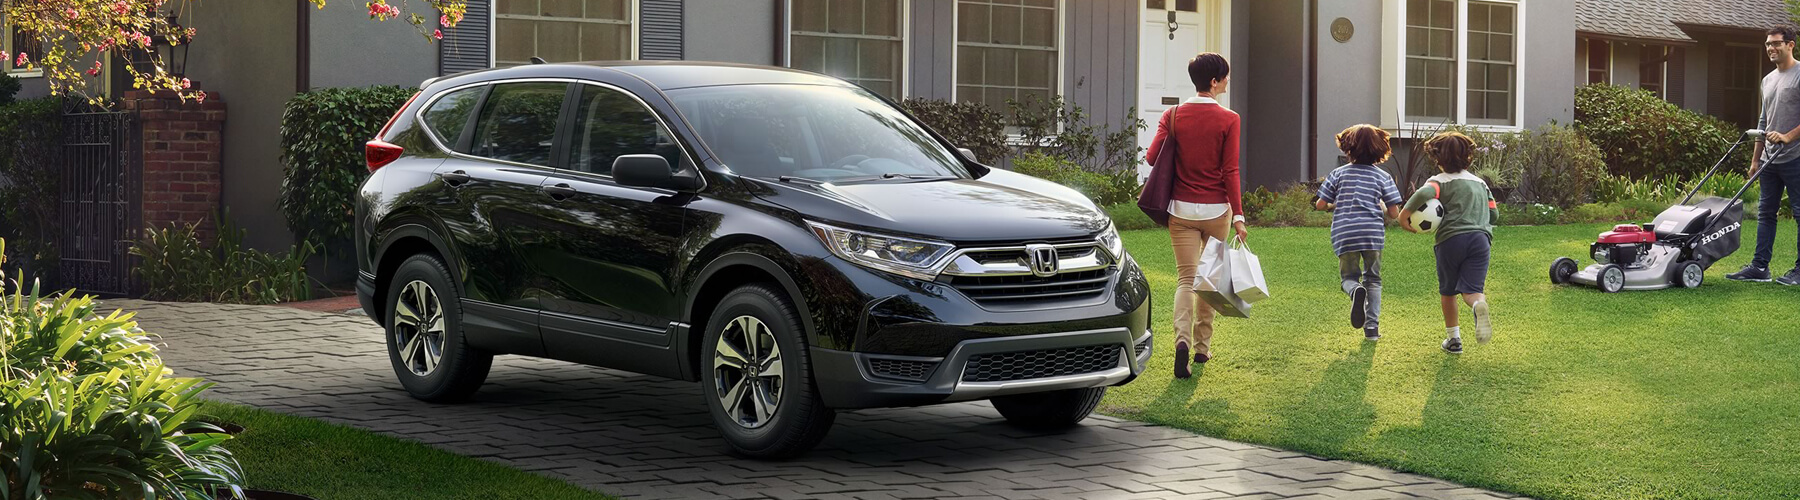 2017 honda cr v mid missouri honda dealers for Honda dealer columbia mo